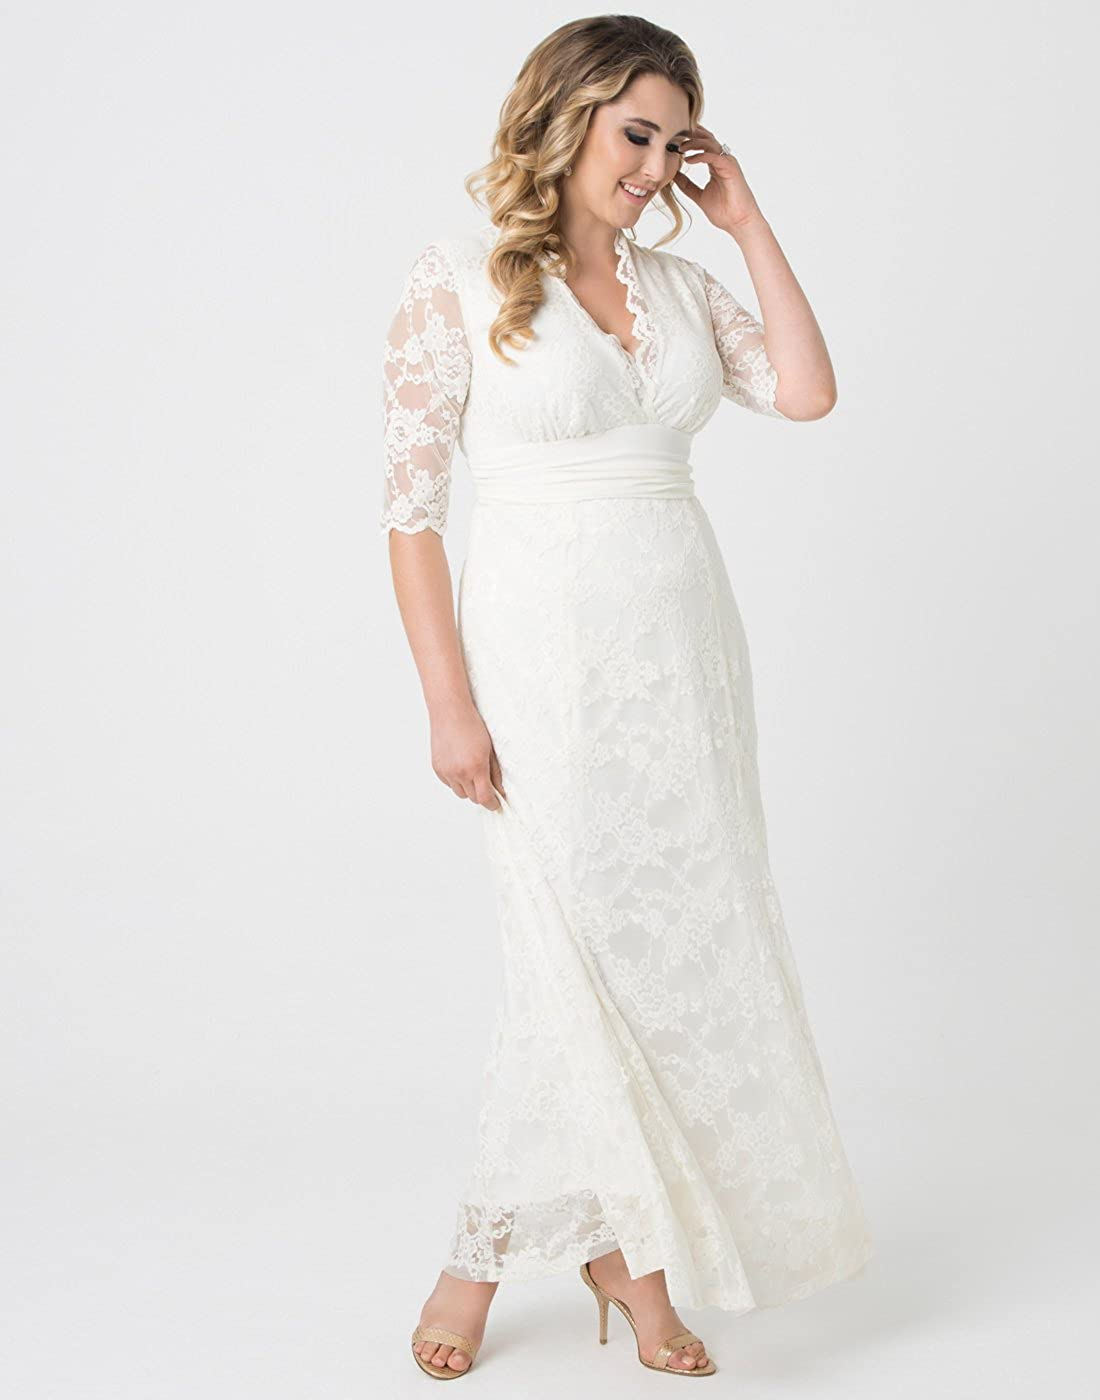 ff63fed5e14 Kiyonna Women s Plus Size Amour Lace Wedding Gown  1541663656-375388 ...